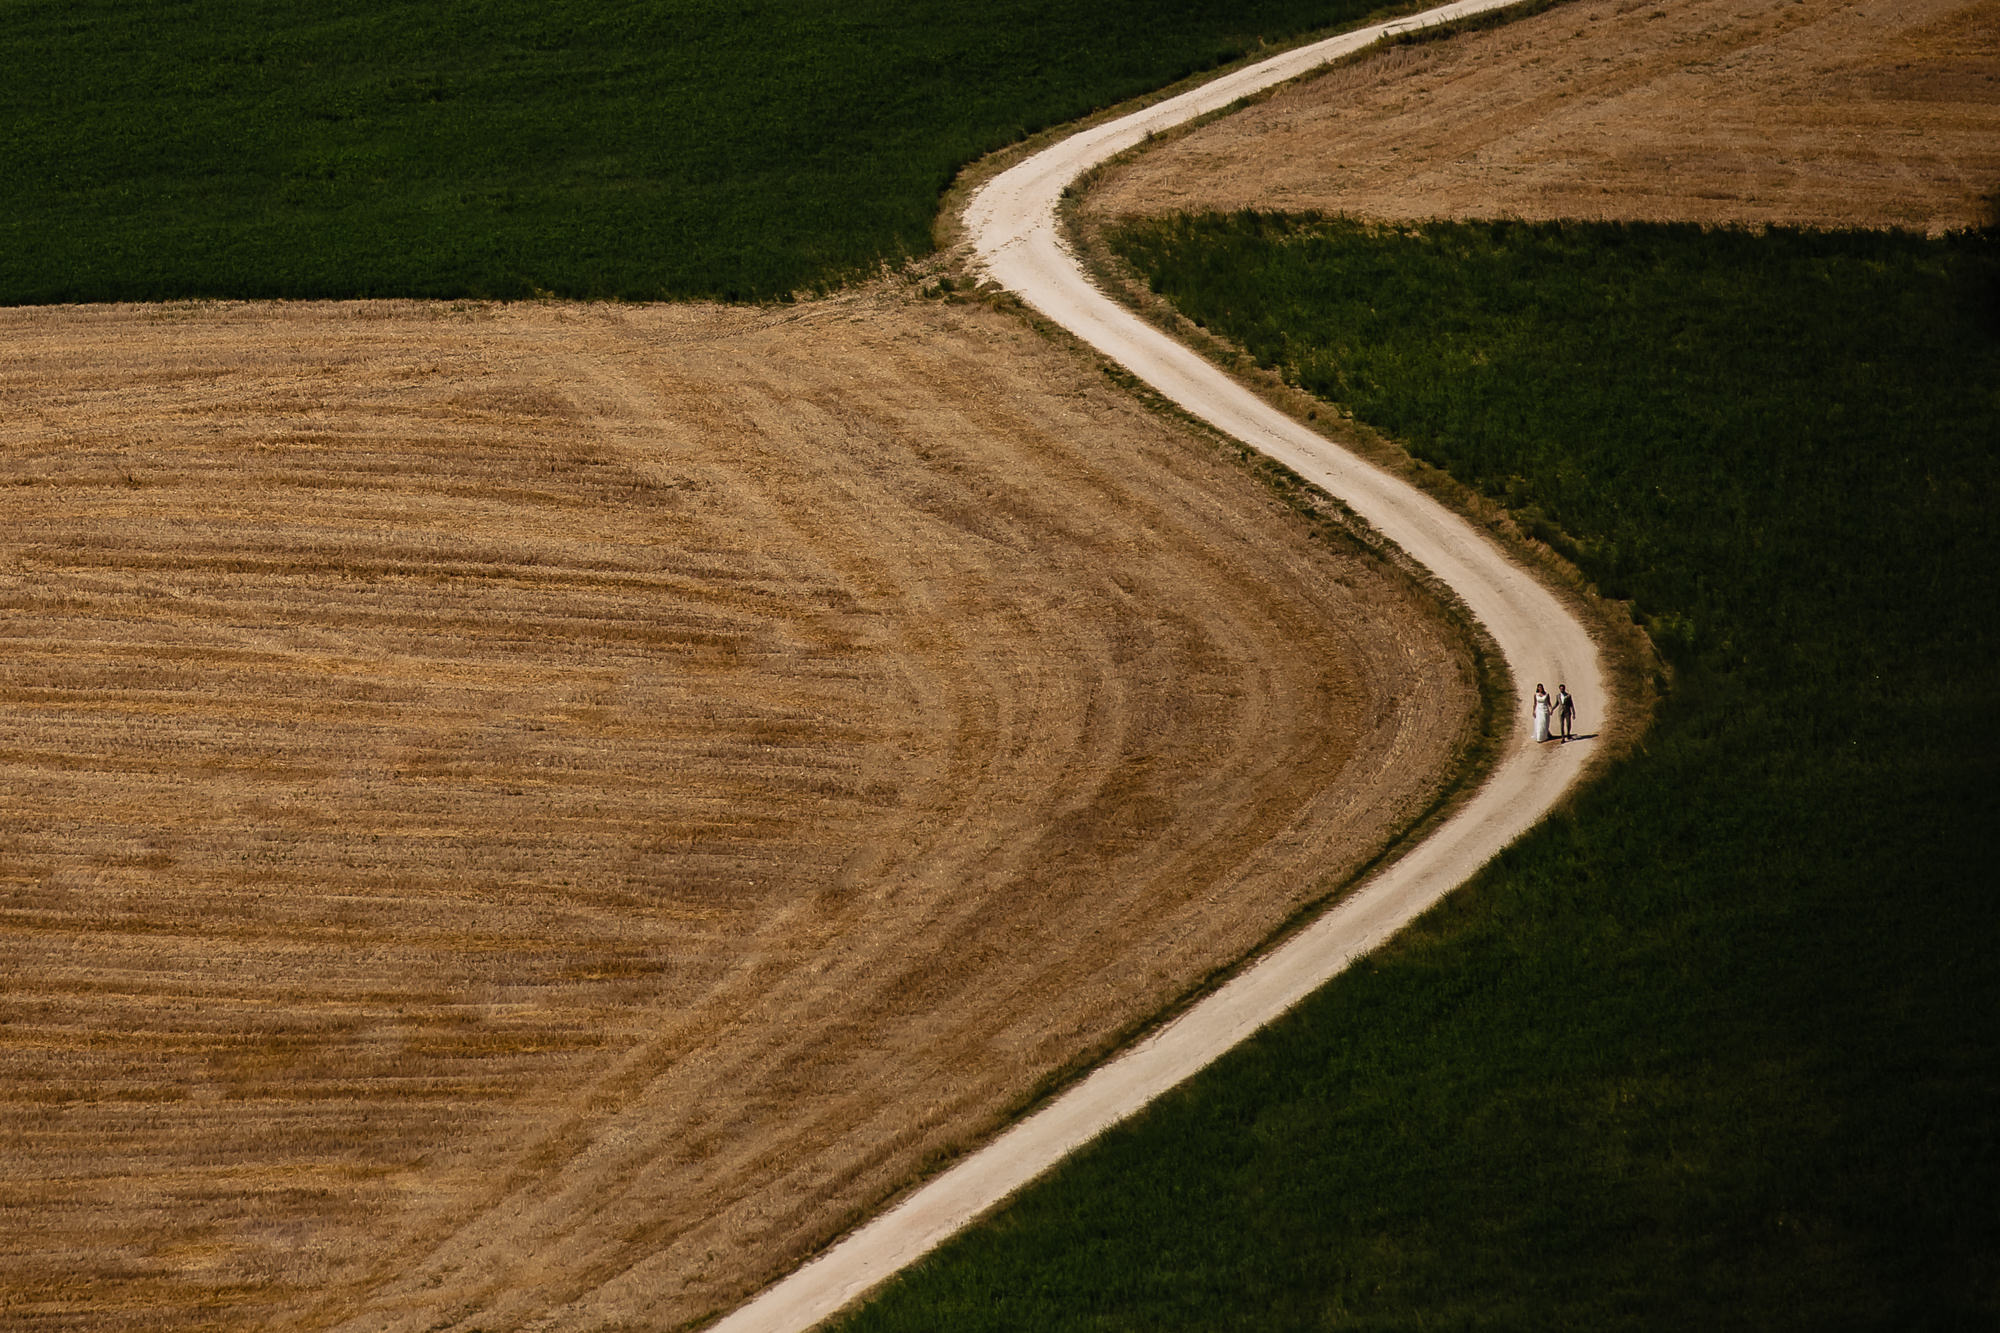 Couple on long winding path through field - photo by Eppel Photography - Netherlands